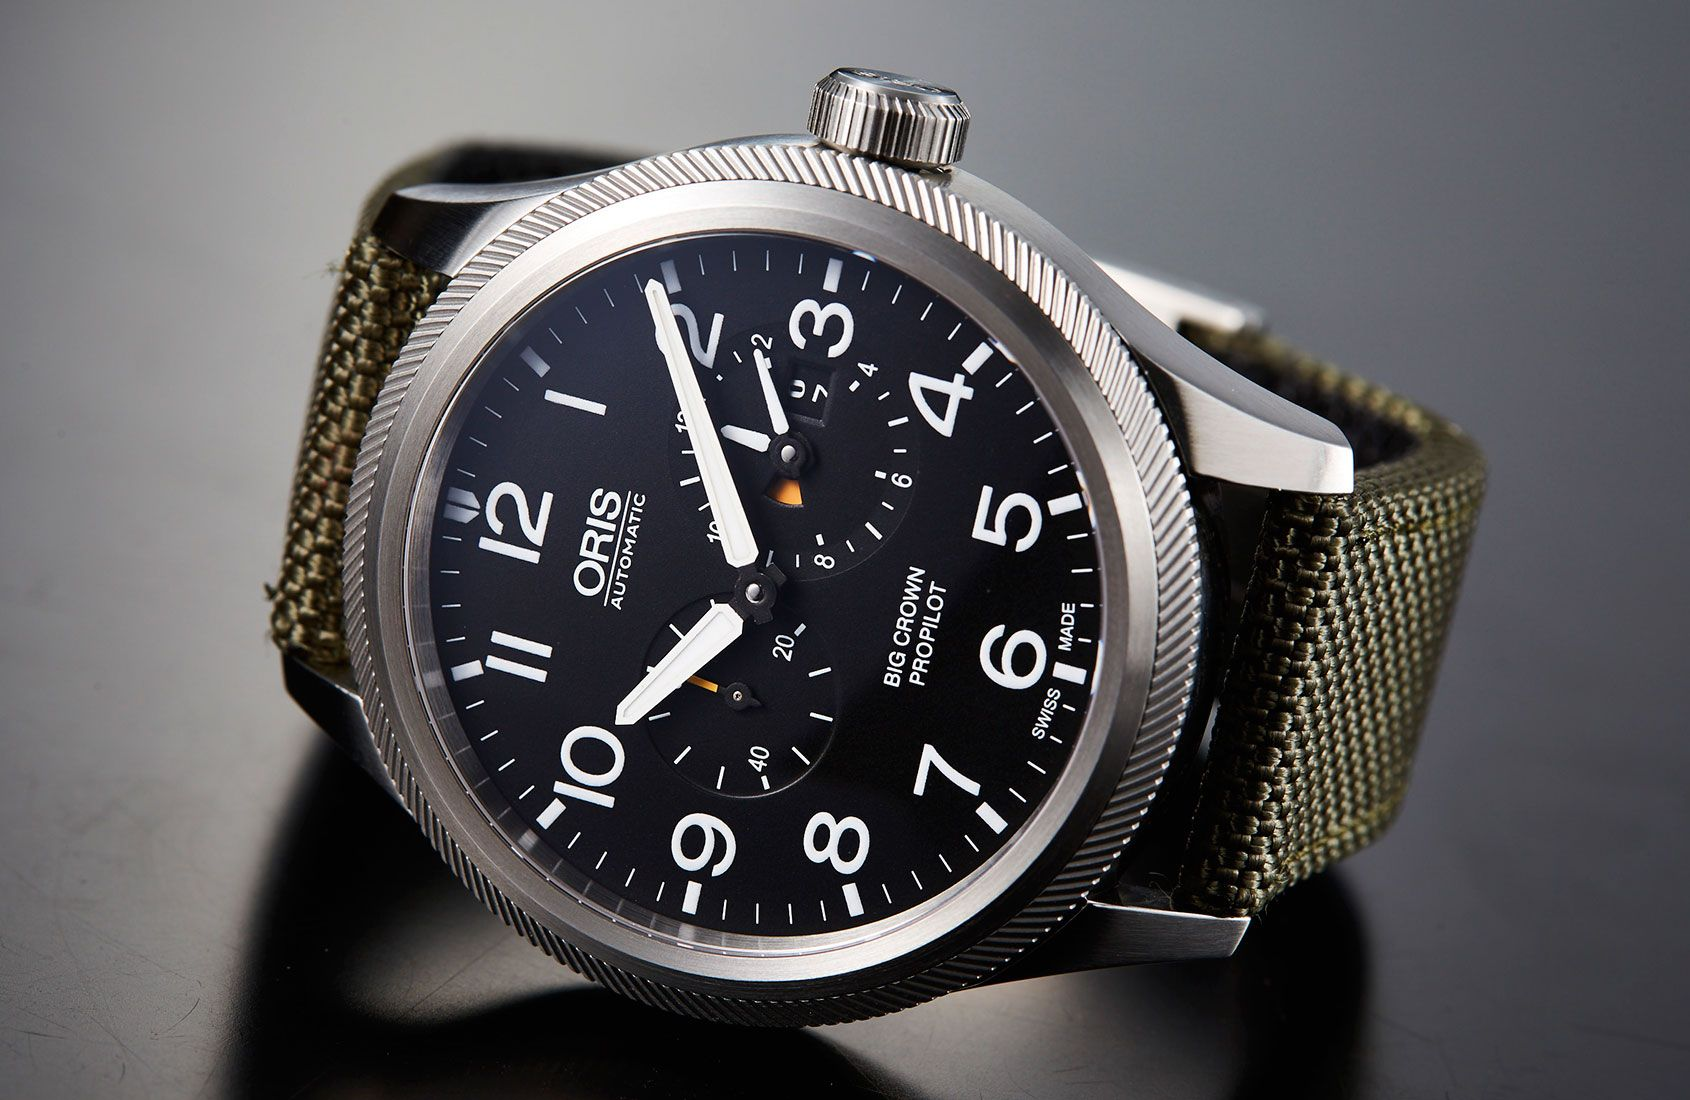 8ac26974aa6 The Oris Big Crown Propilot Worldtimer isn t your typical GMT.